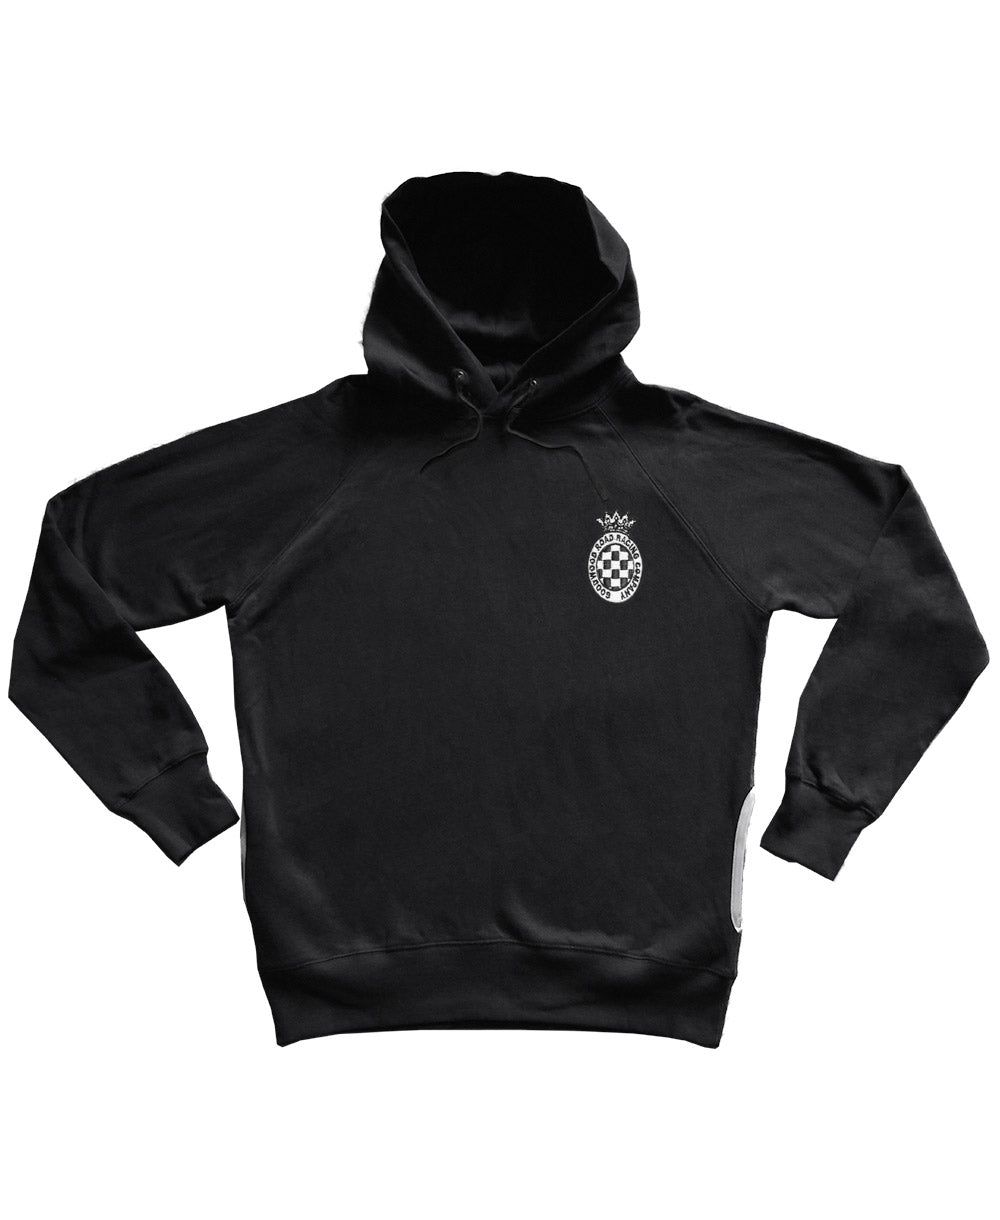 Goodwood Road Racing Company Hoody Black and White